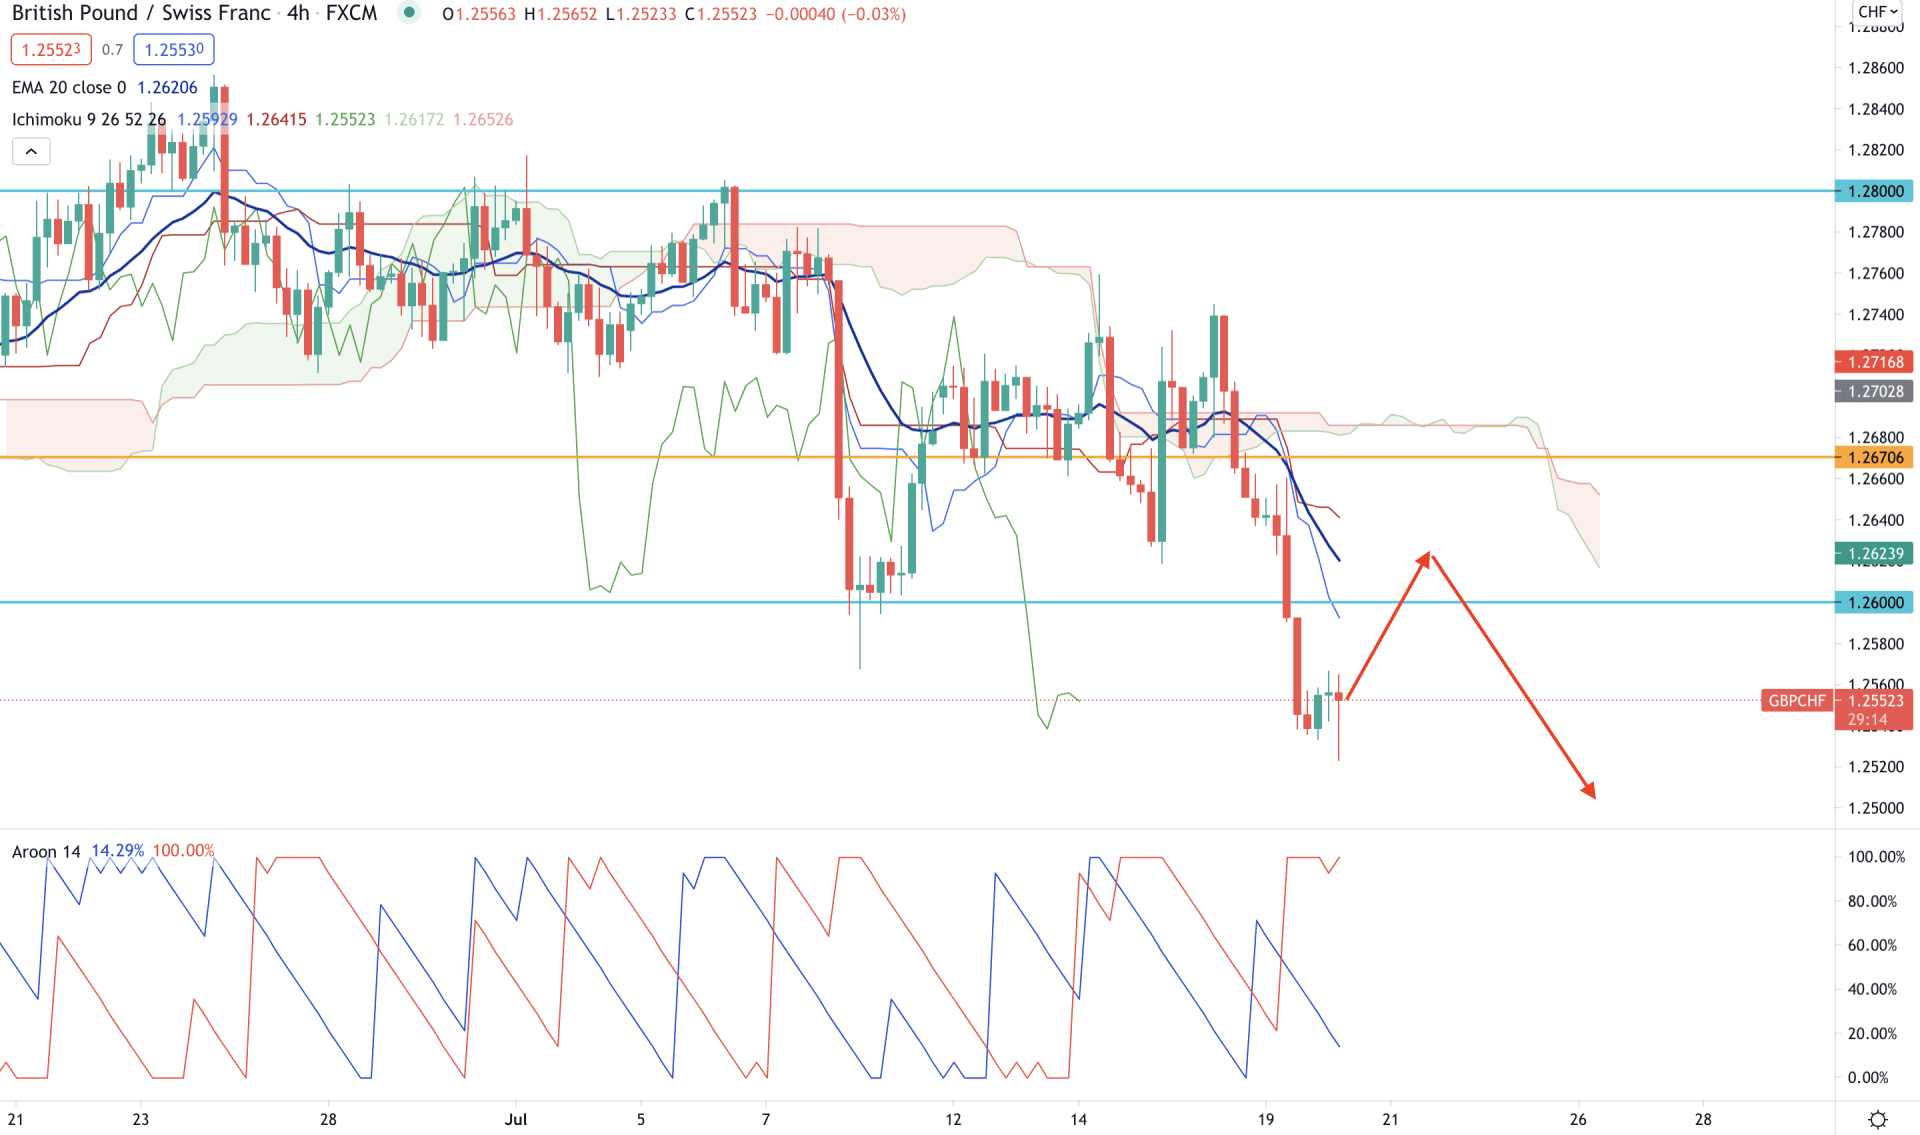 GBPCHF H4 Technical Analysis 20 July 2021